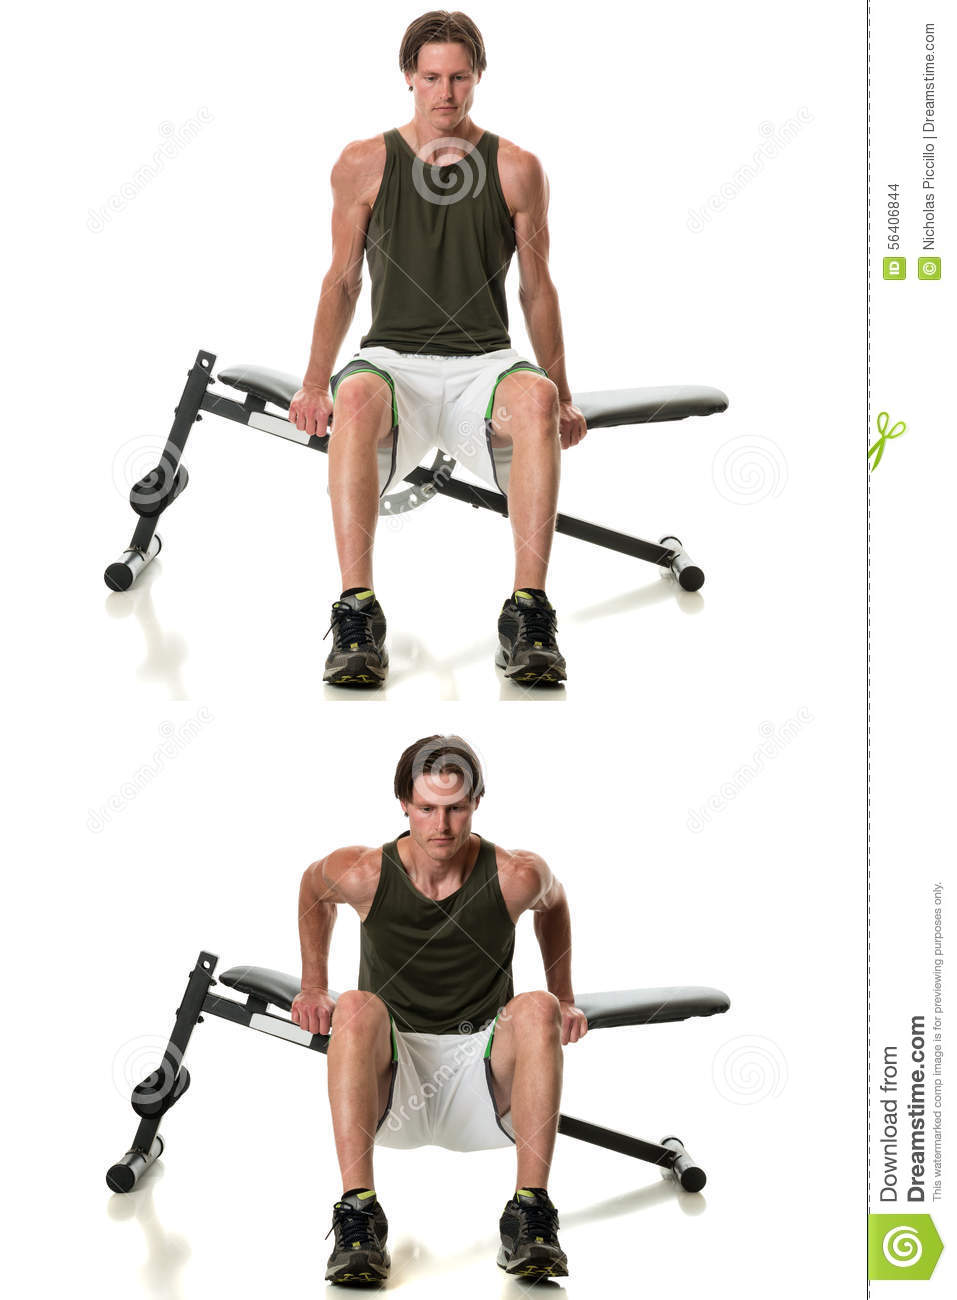 Miraculous Bench Dip Stock Photo Image Of Muscle Sports Body 56406844 Pdpeps Interior Chair Design Pdpepsorg